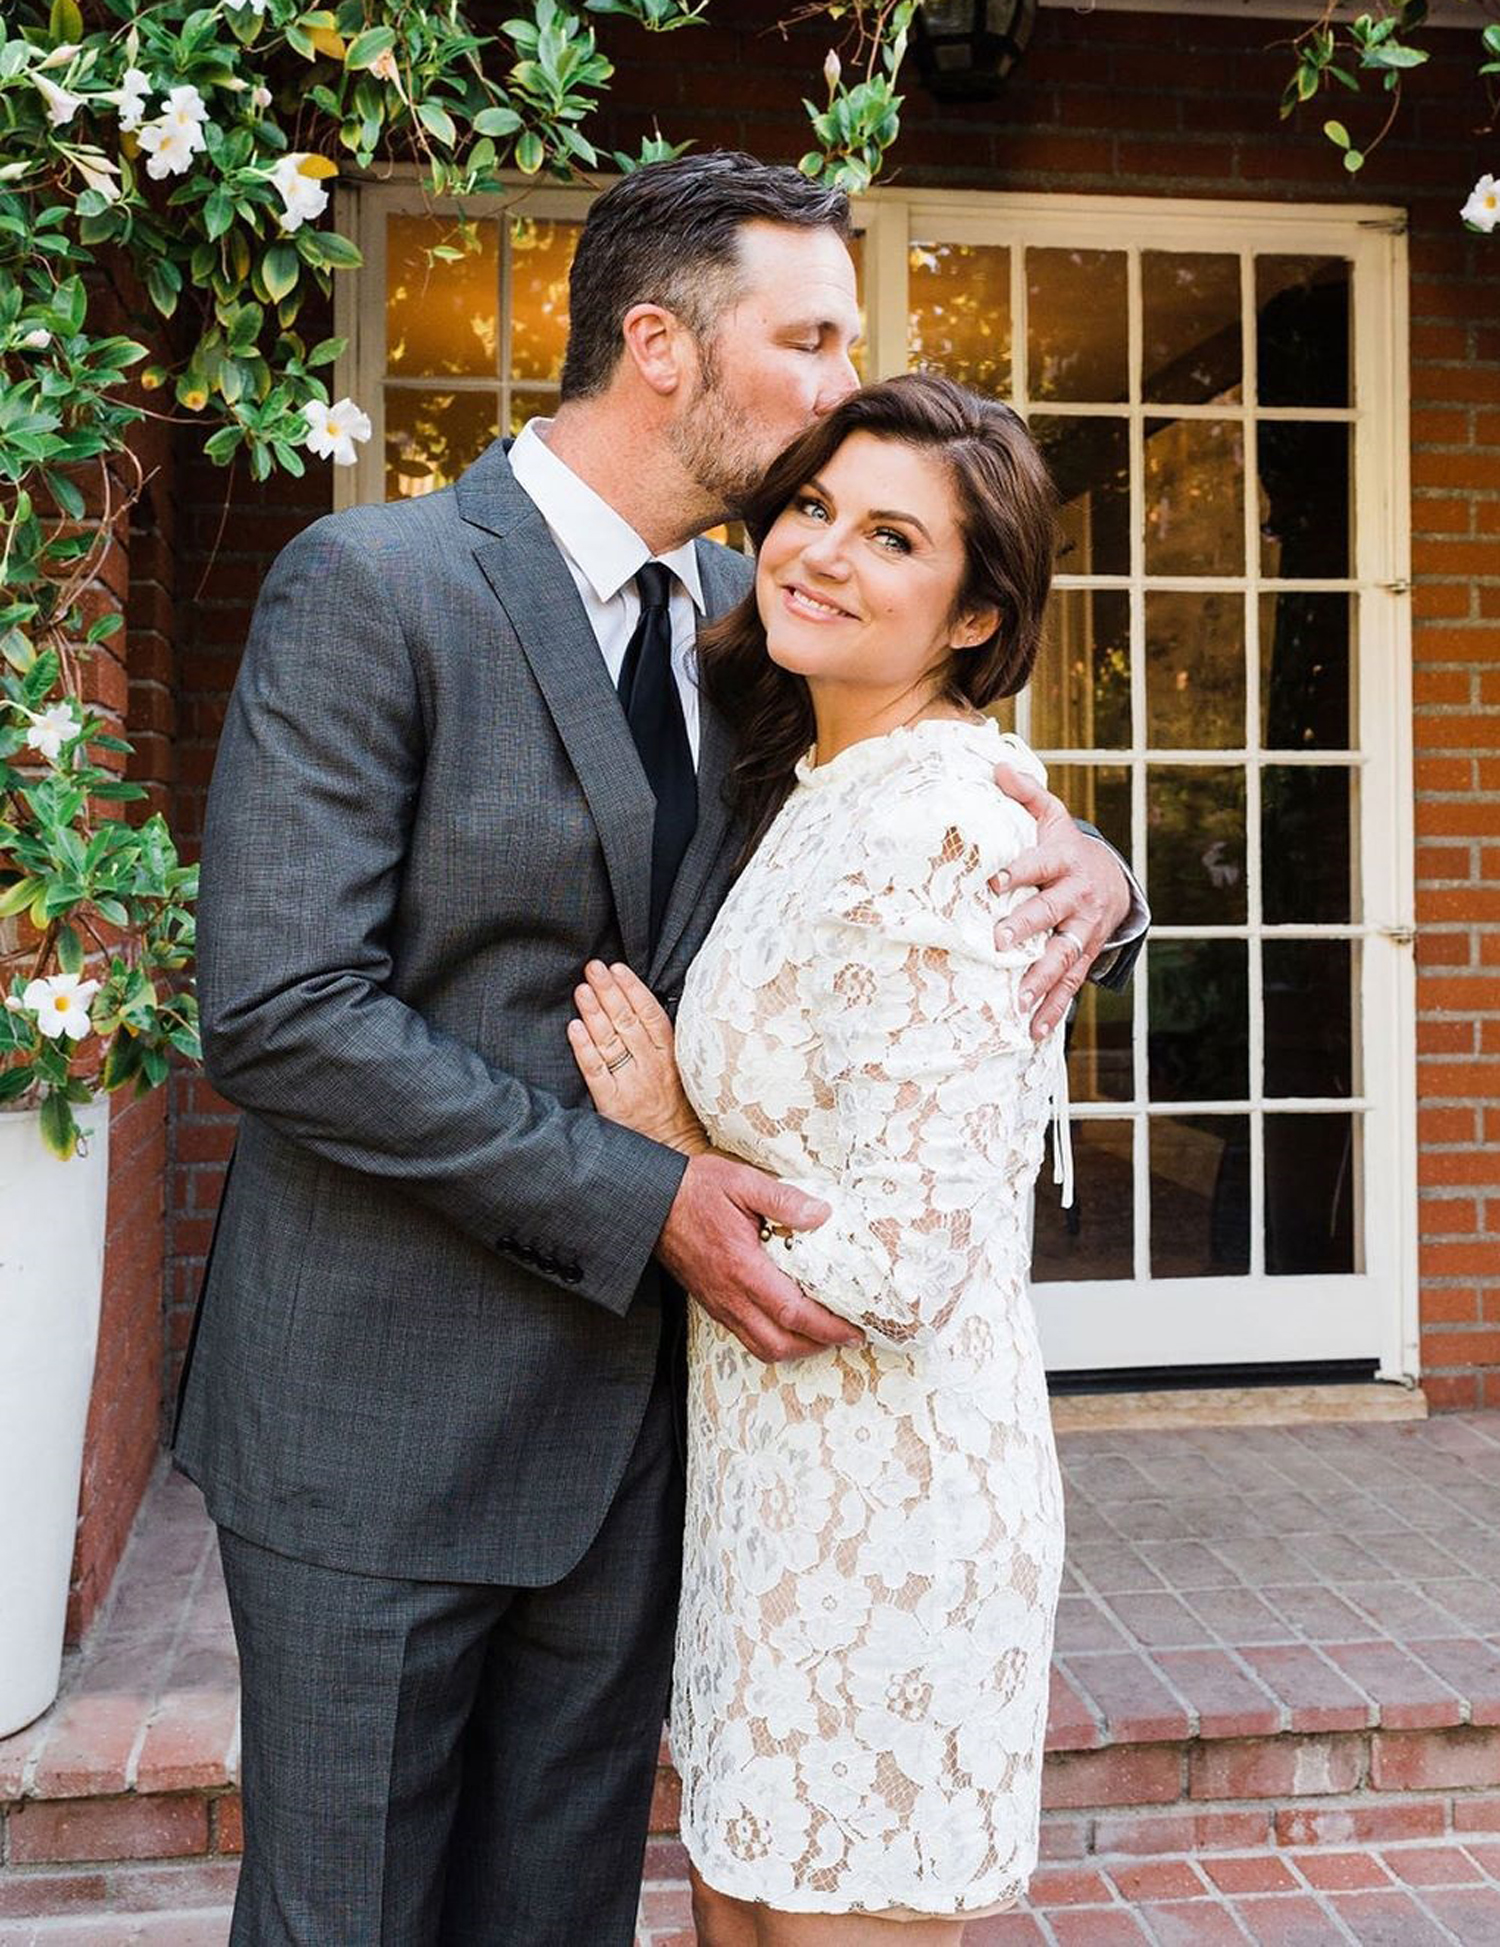 Tiffani Thiessen Wedding Anniversary